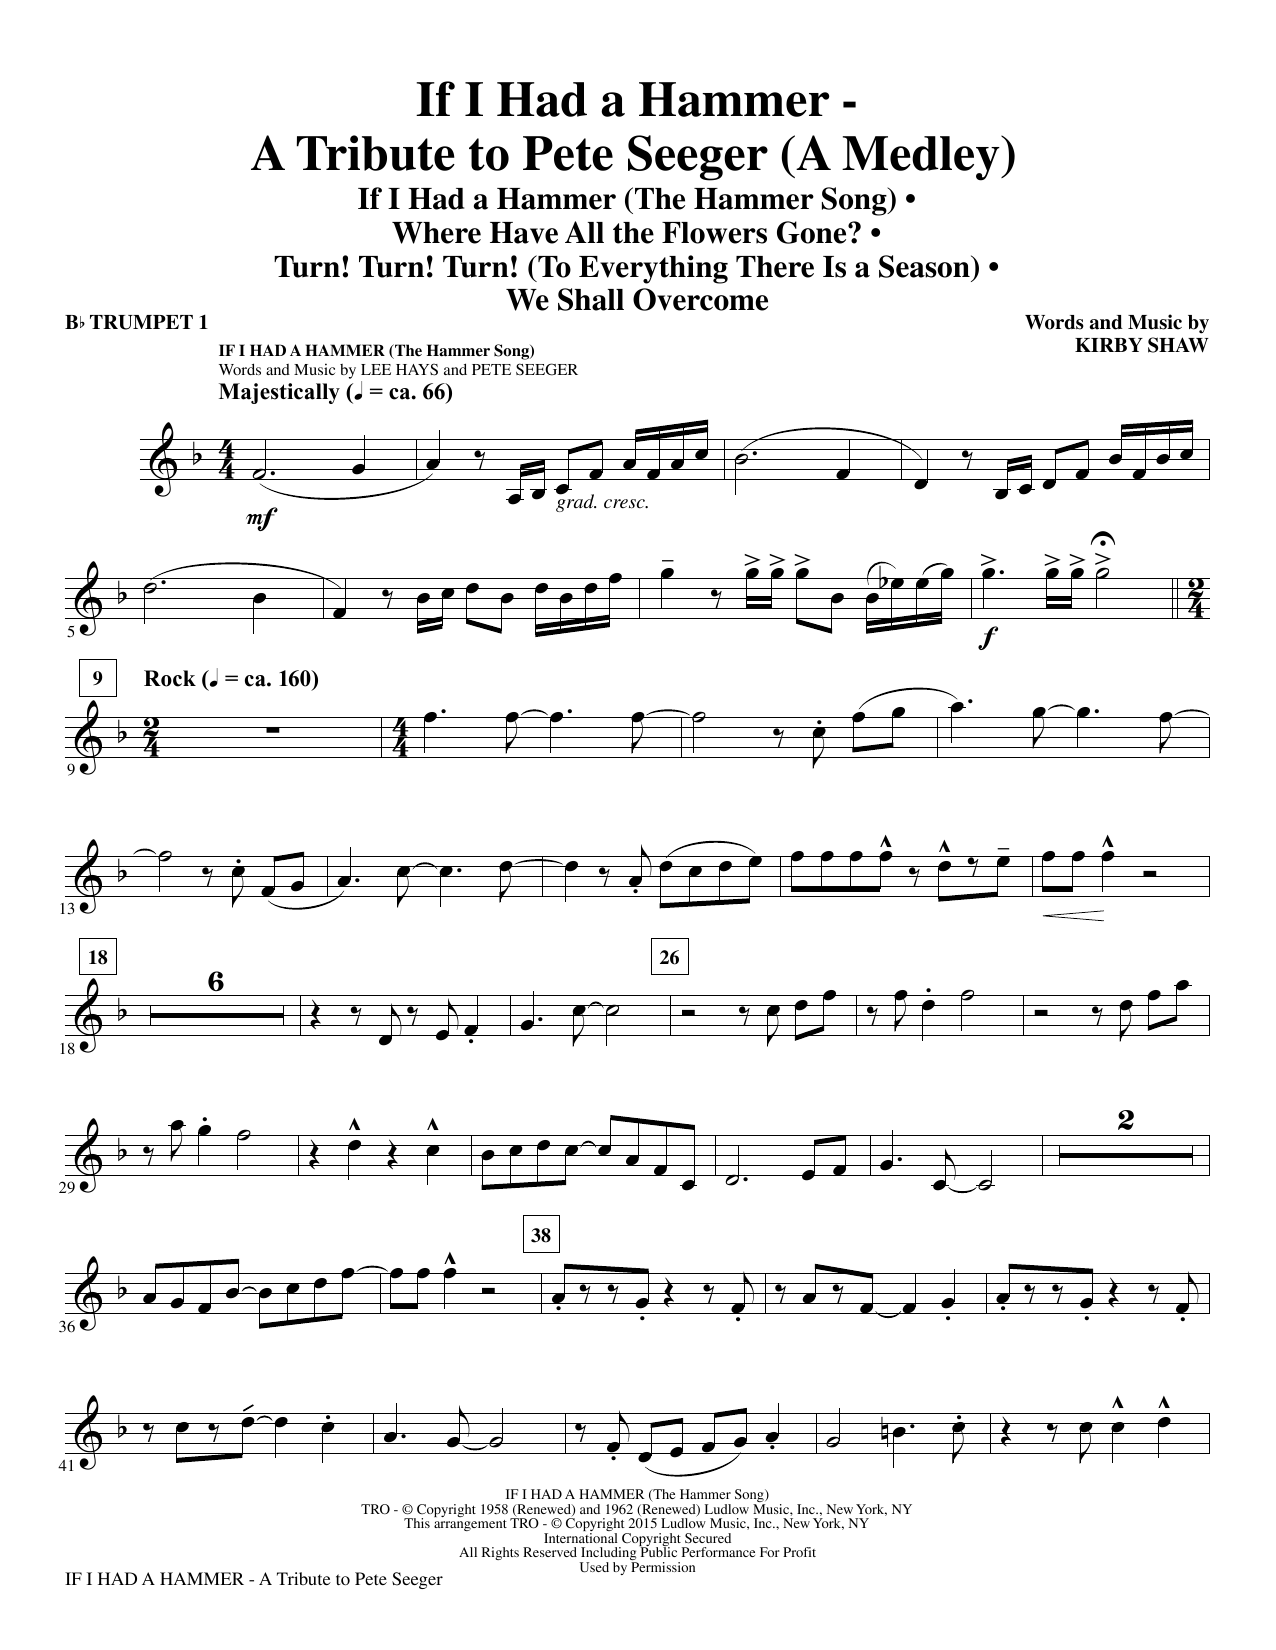 If I Had A Hammer - A Tribute to Pete Seeger (complete set of parts) sheet music for orchestra/band by Kirby Shaw